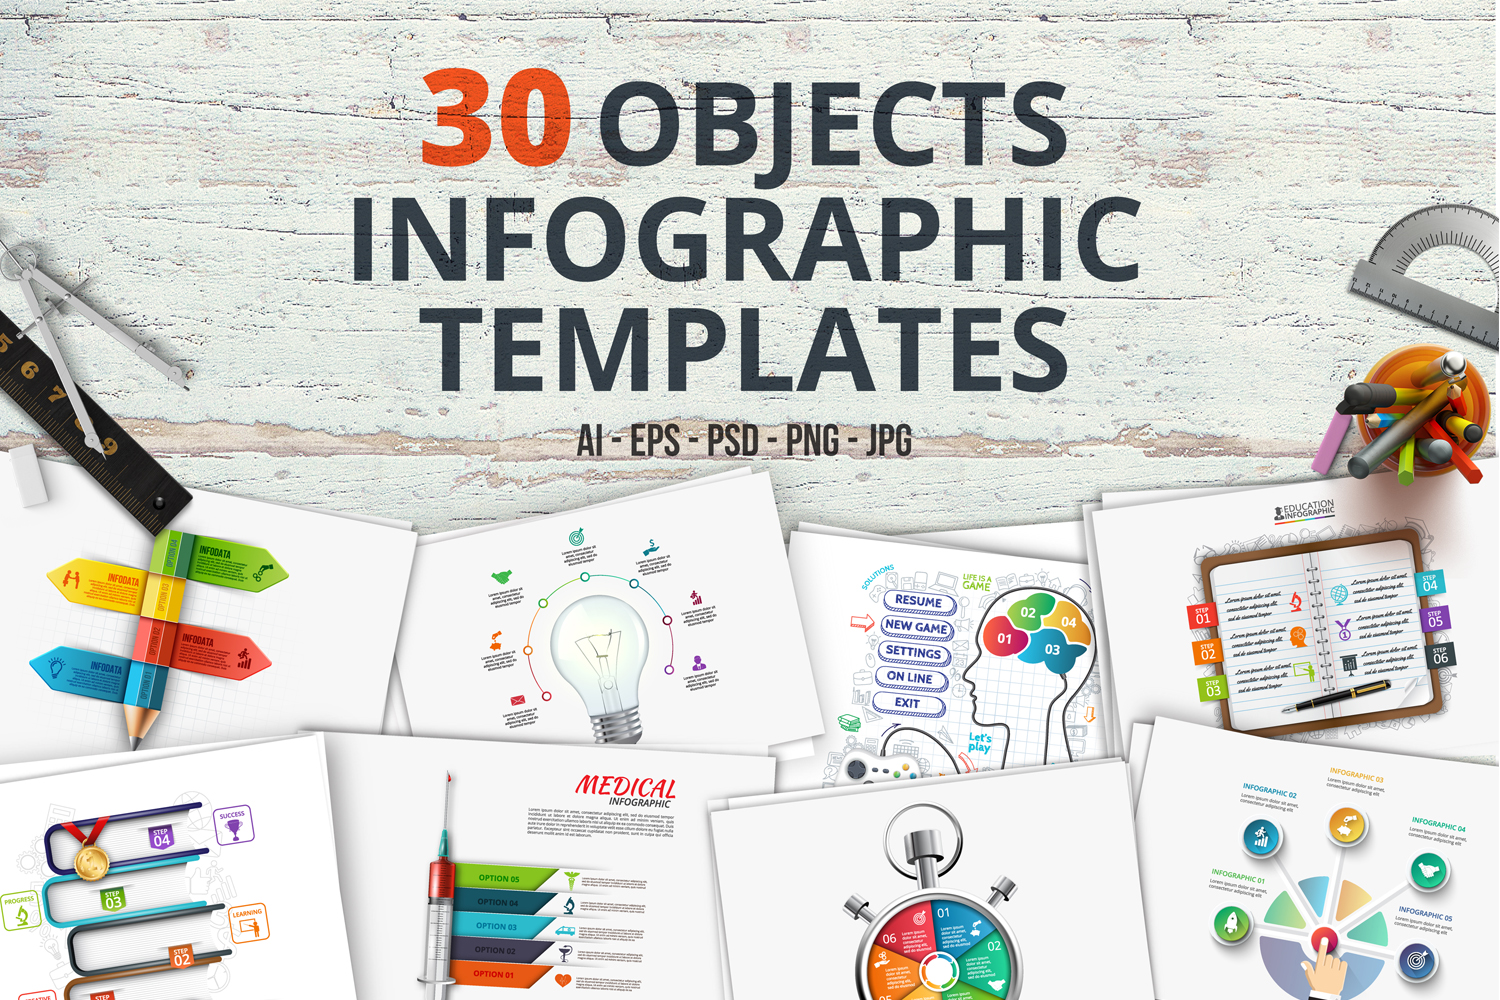 30 business infographic templates example image 1